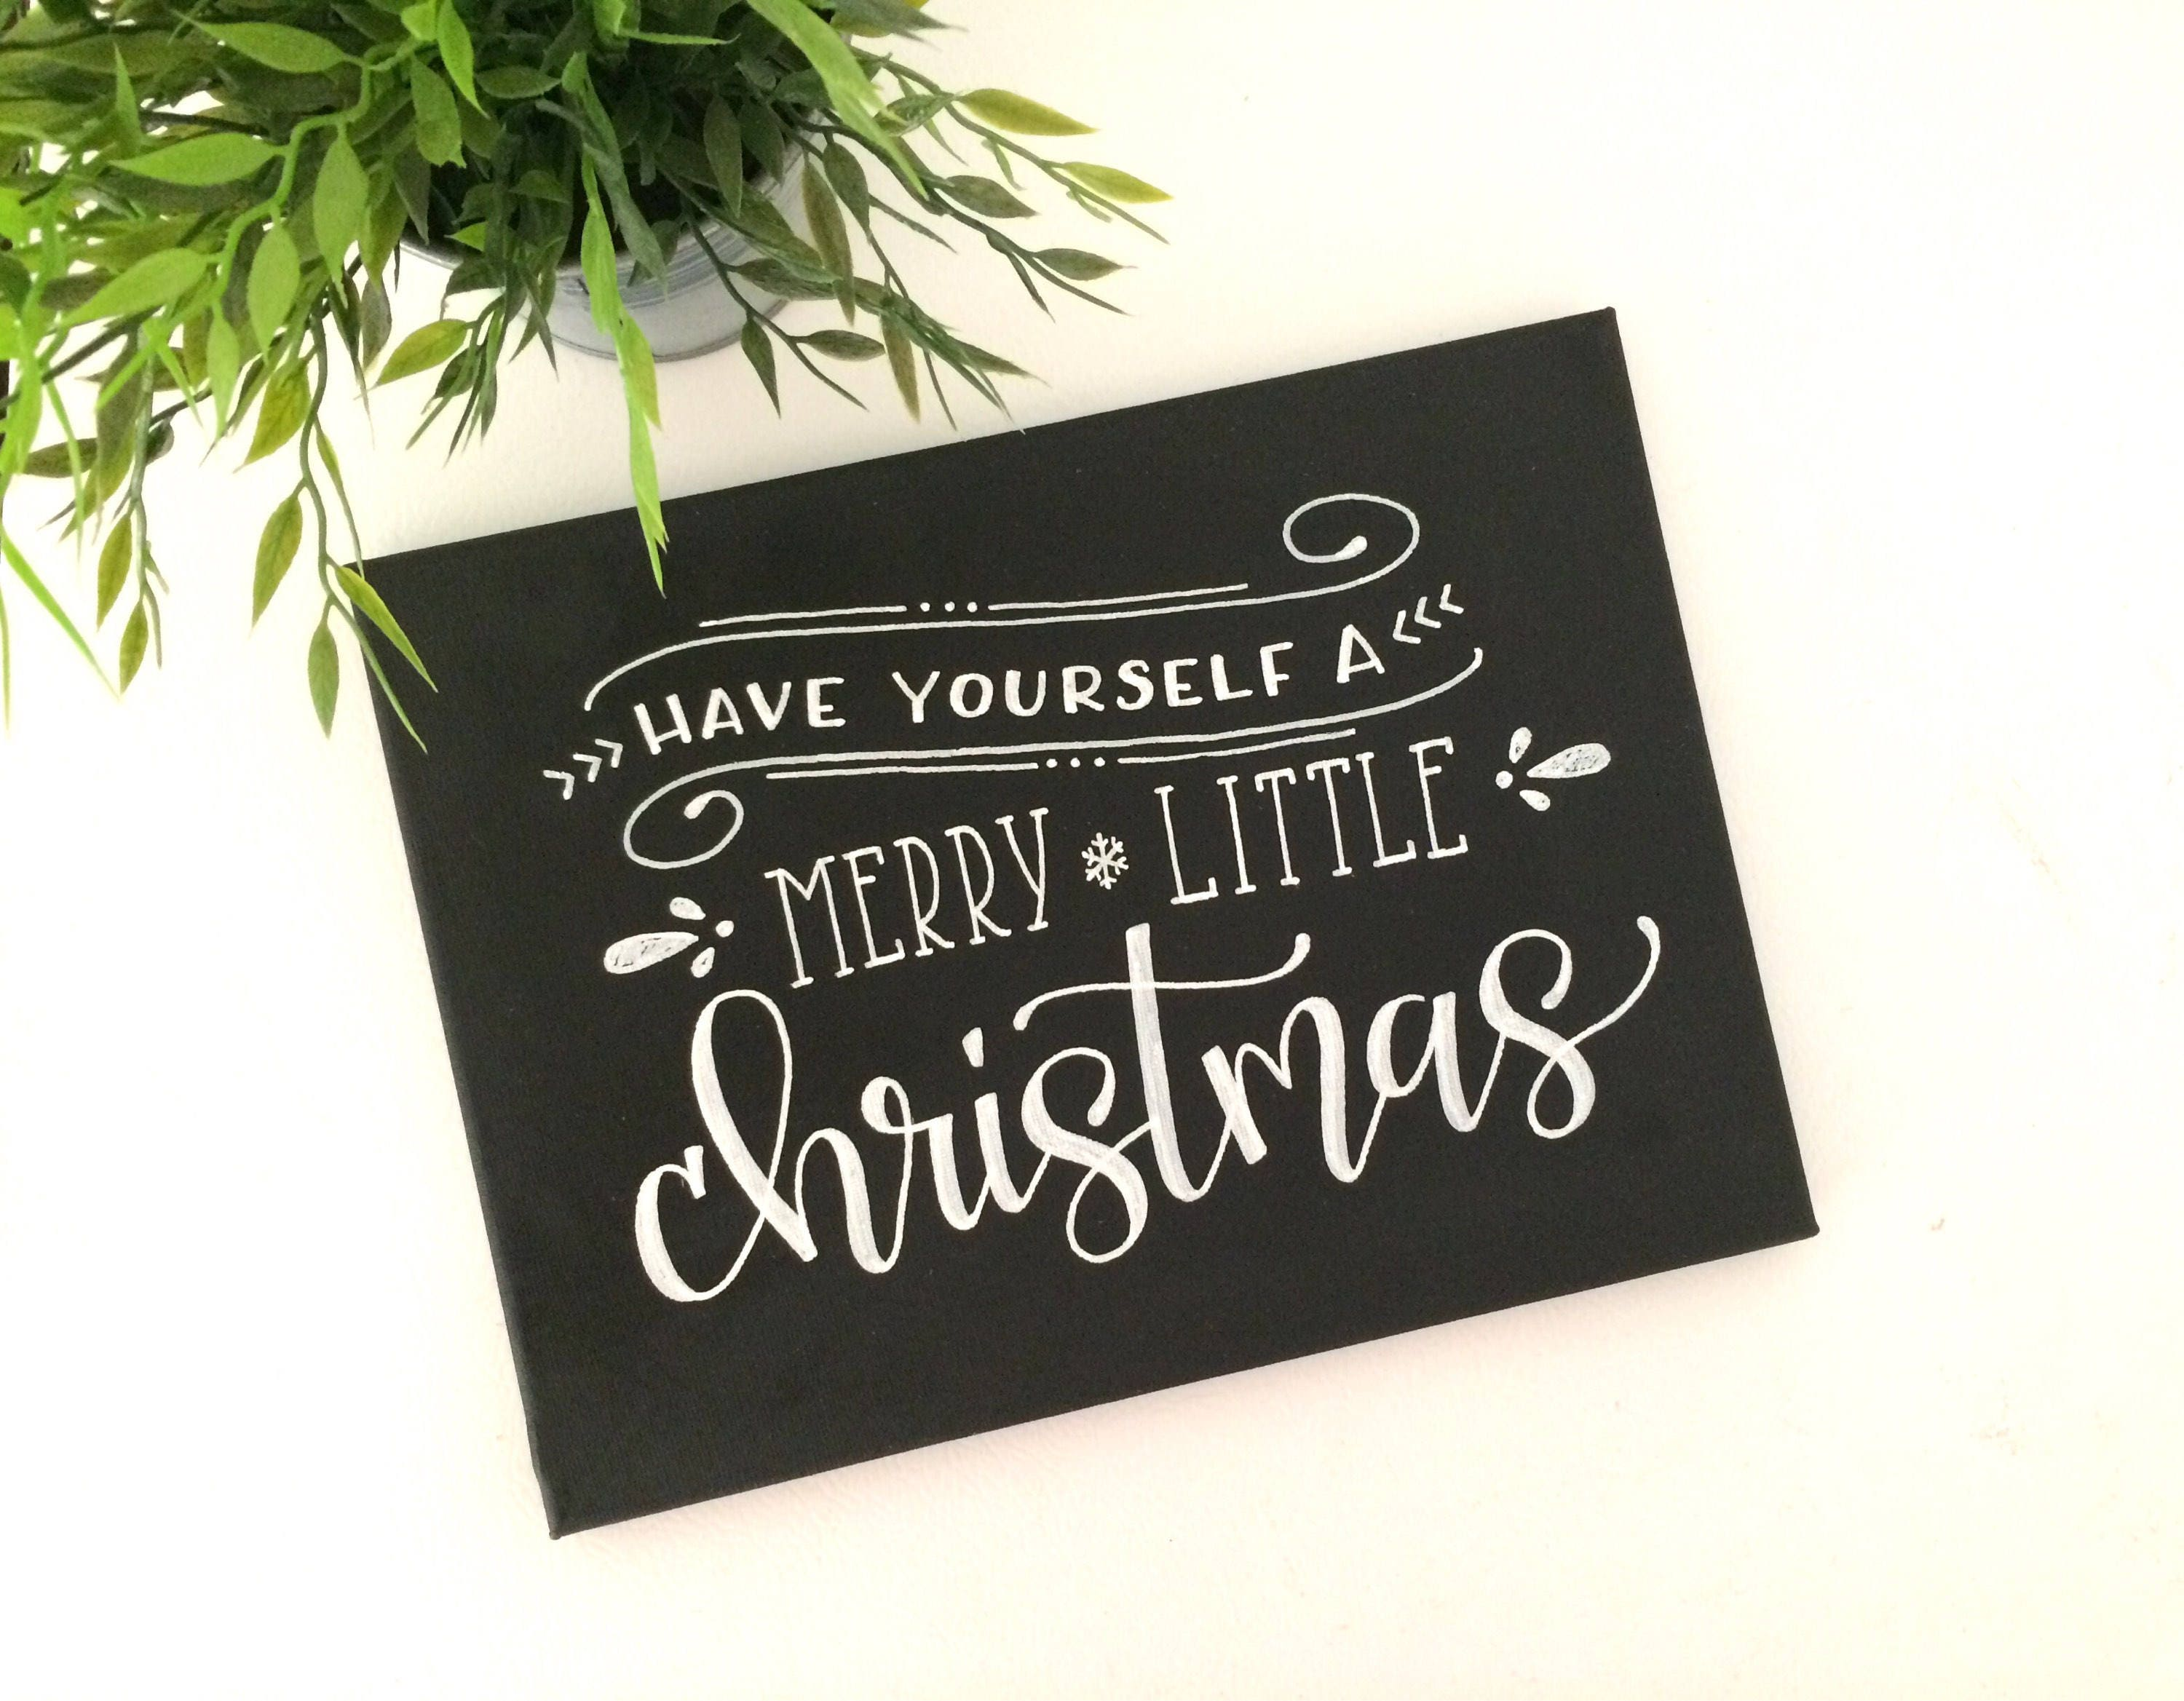 Merry Little Christmas Freehand Painted Canvas Decor Holiday